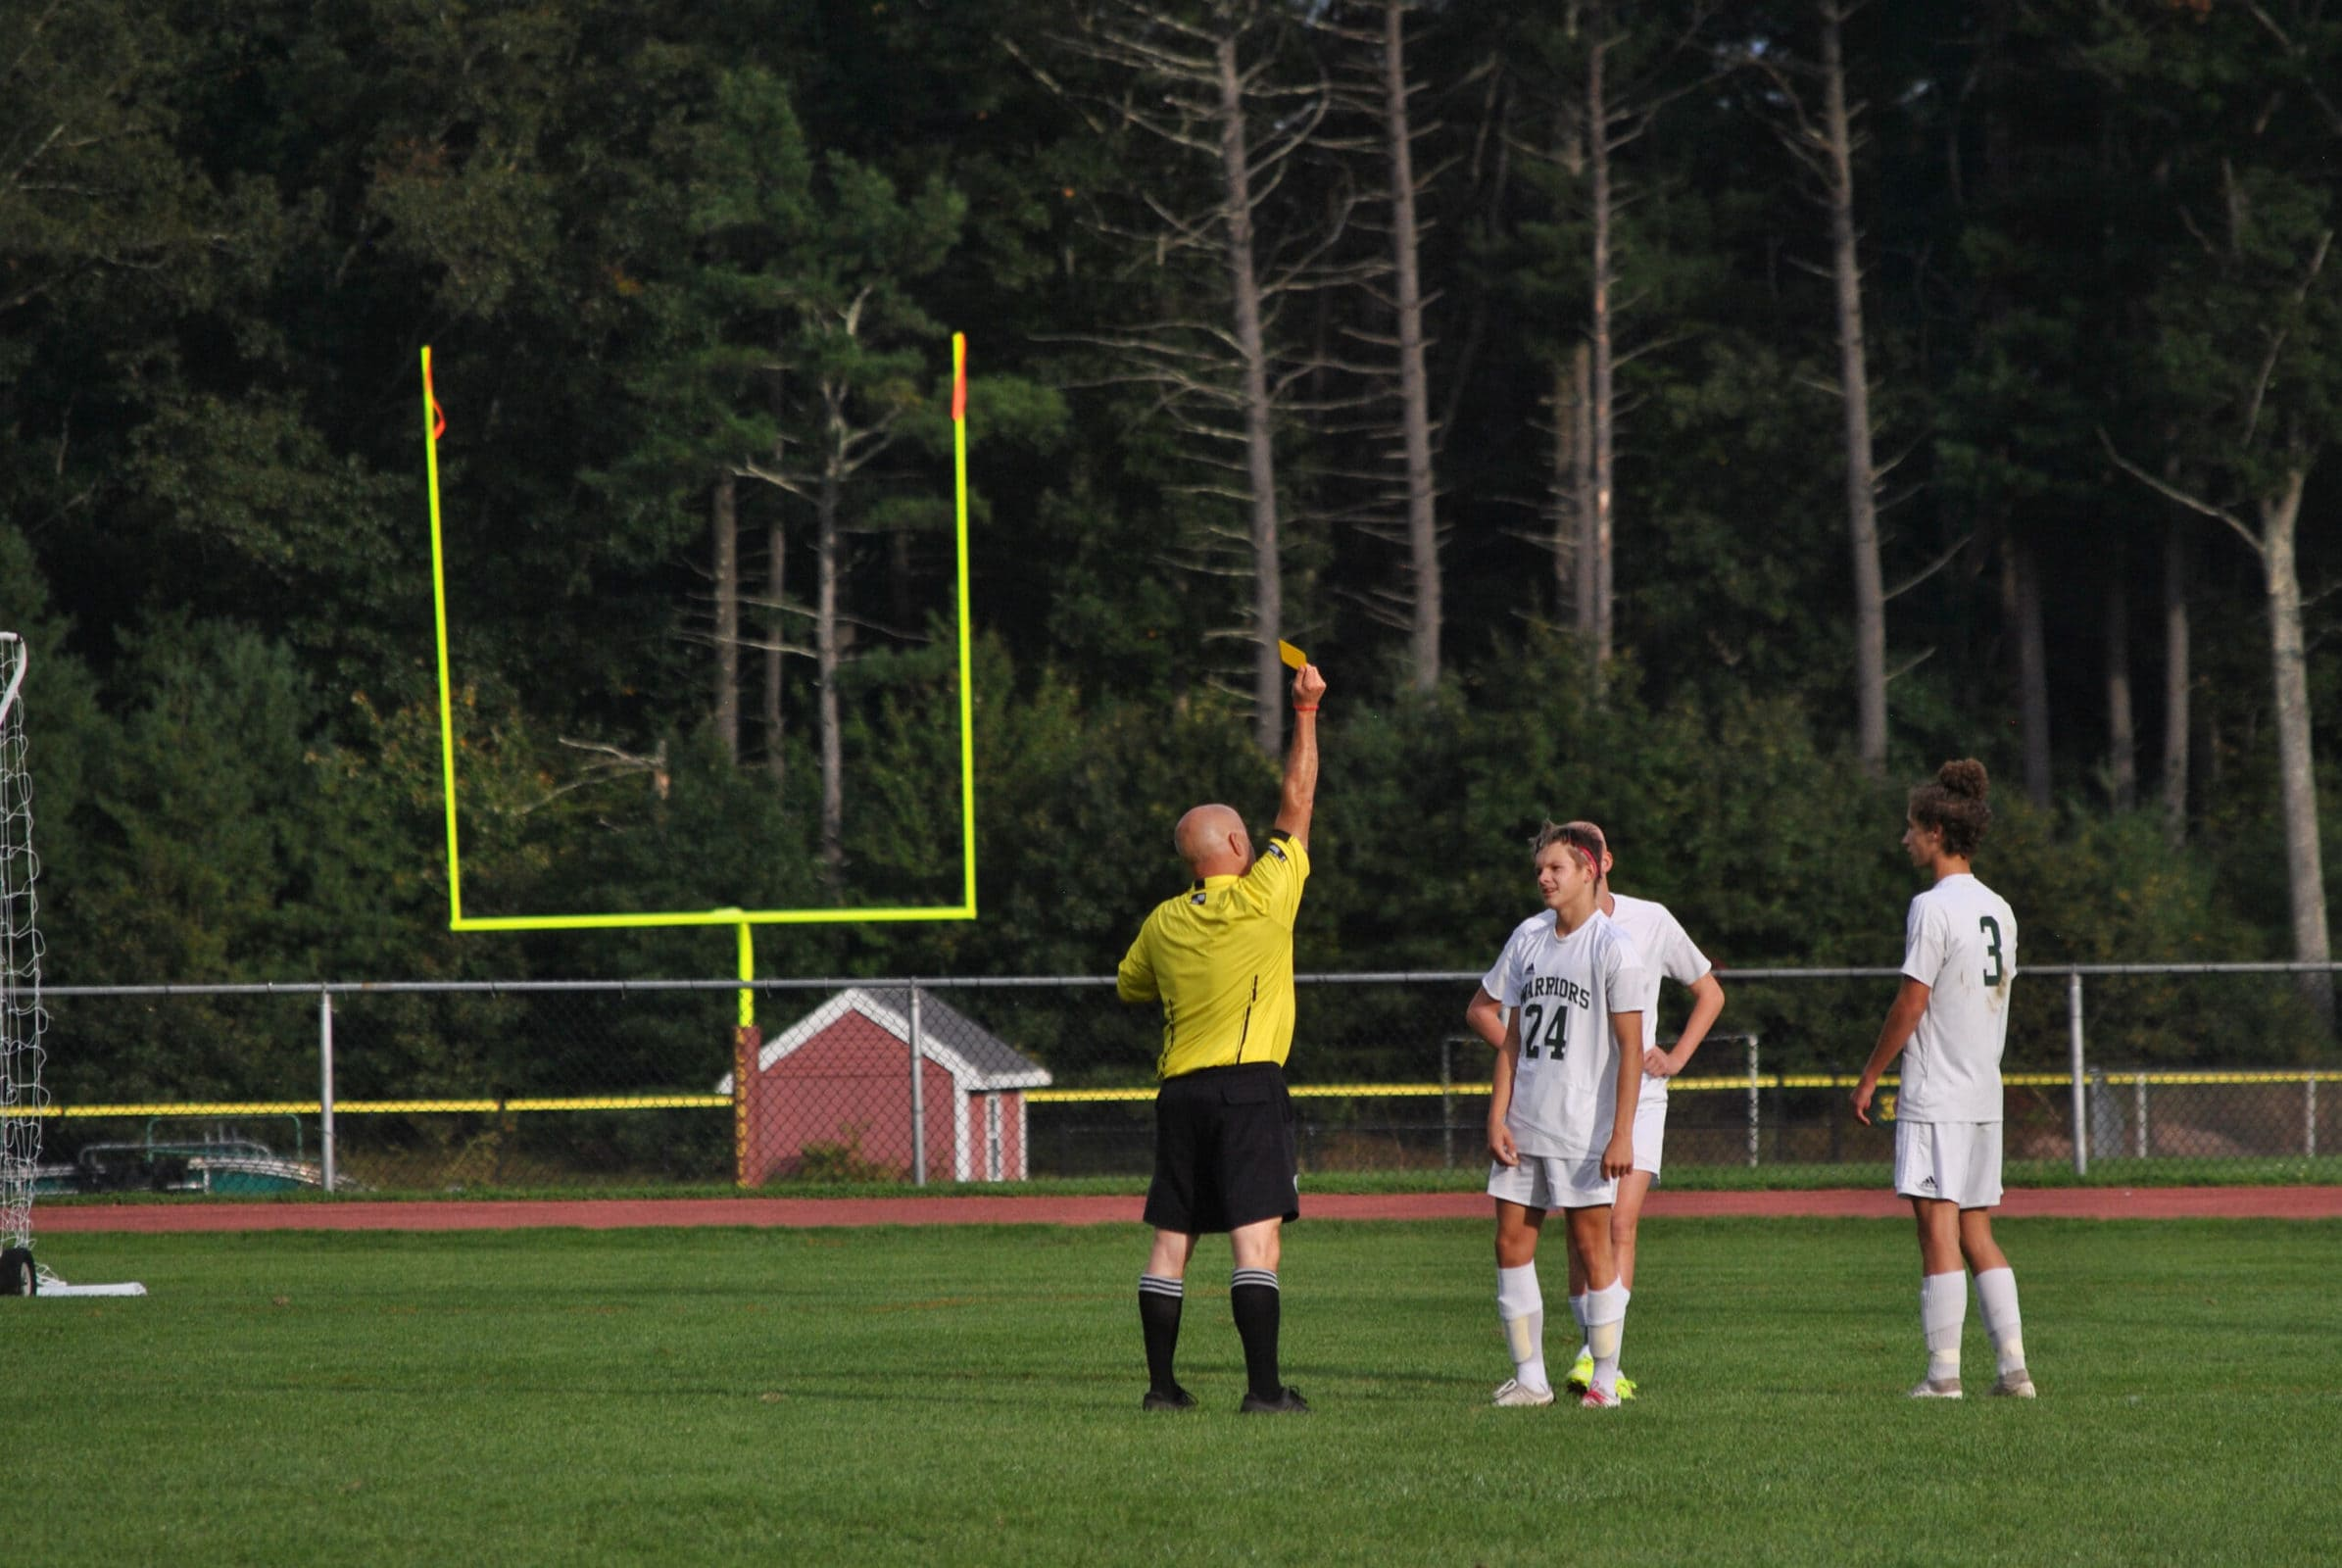 A referee issues a yellow card during a physical and penalty-filled first half of Algonquin's game against Tantasqua on Oct. 9.